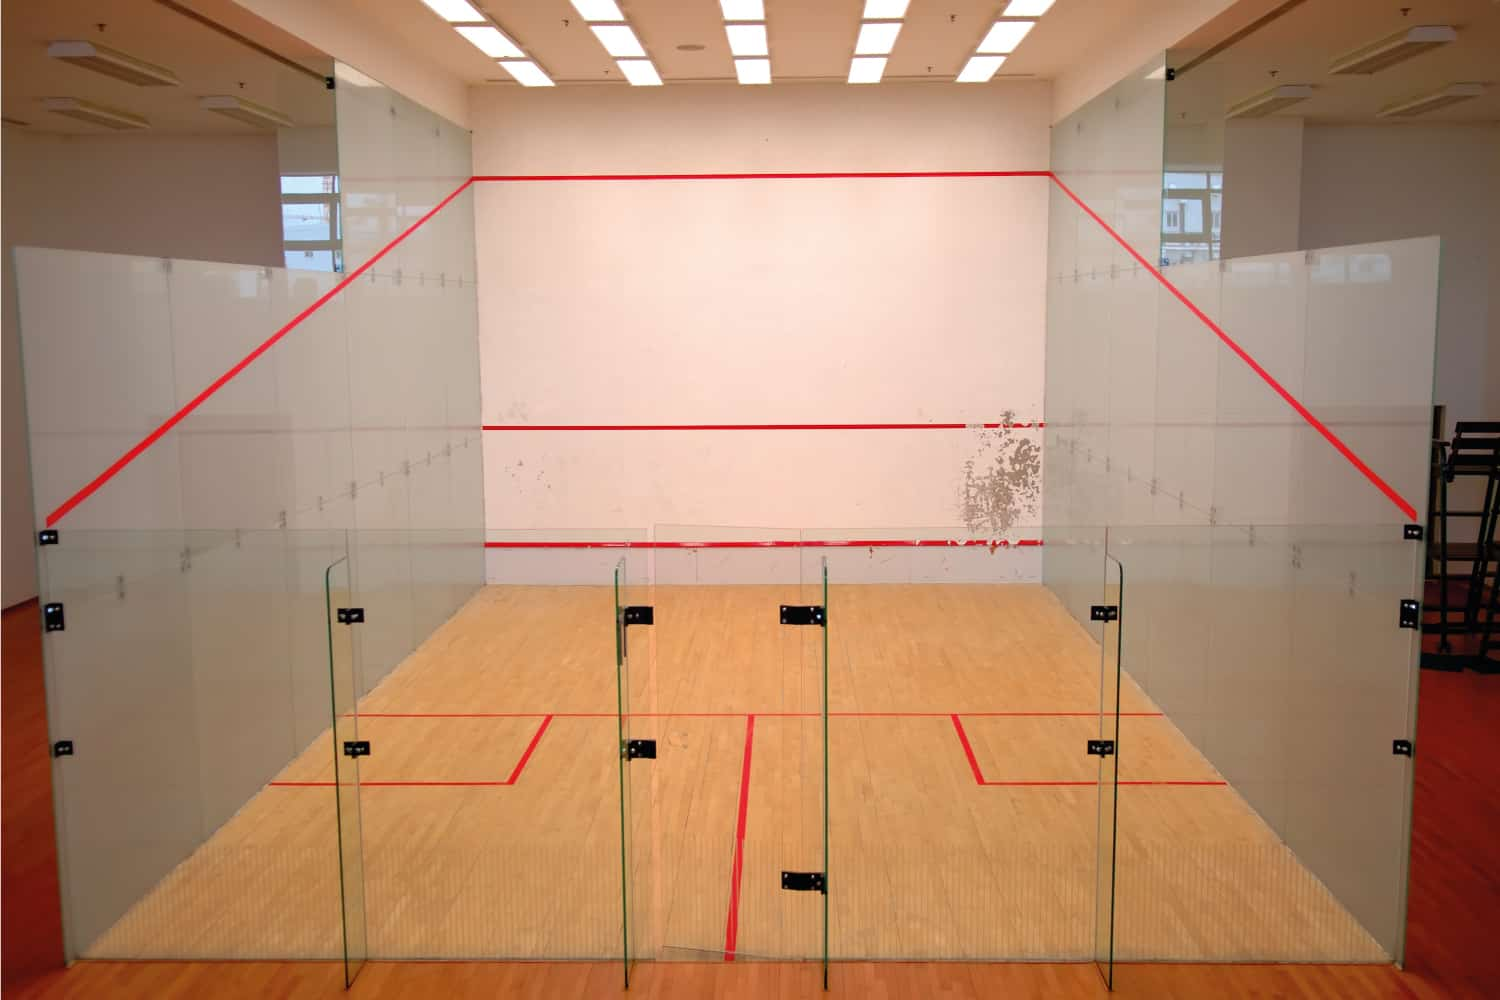 A standard squash court, photo taken from outside the back wall